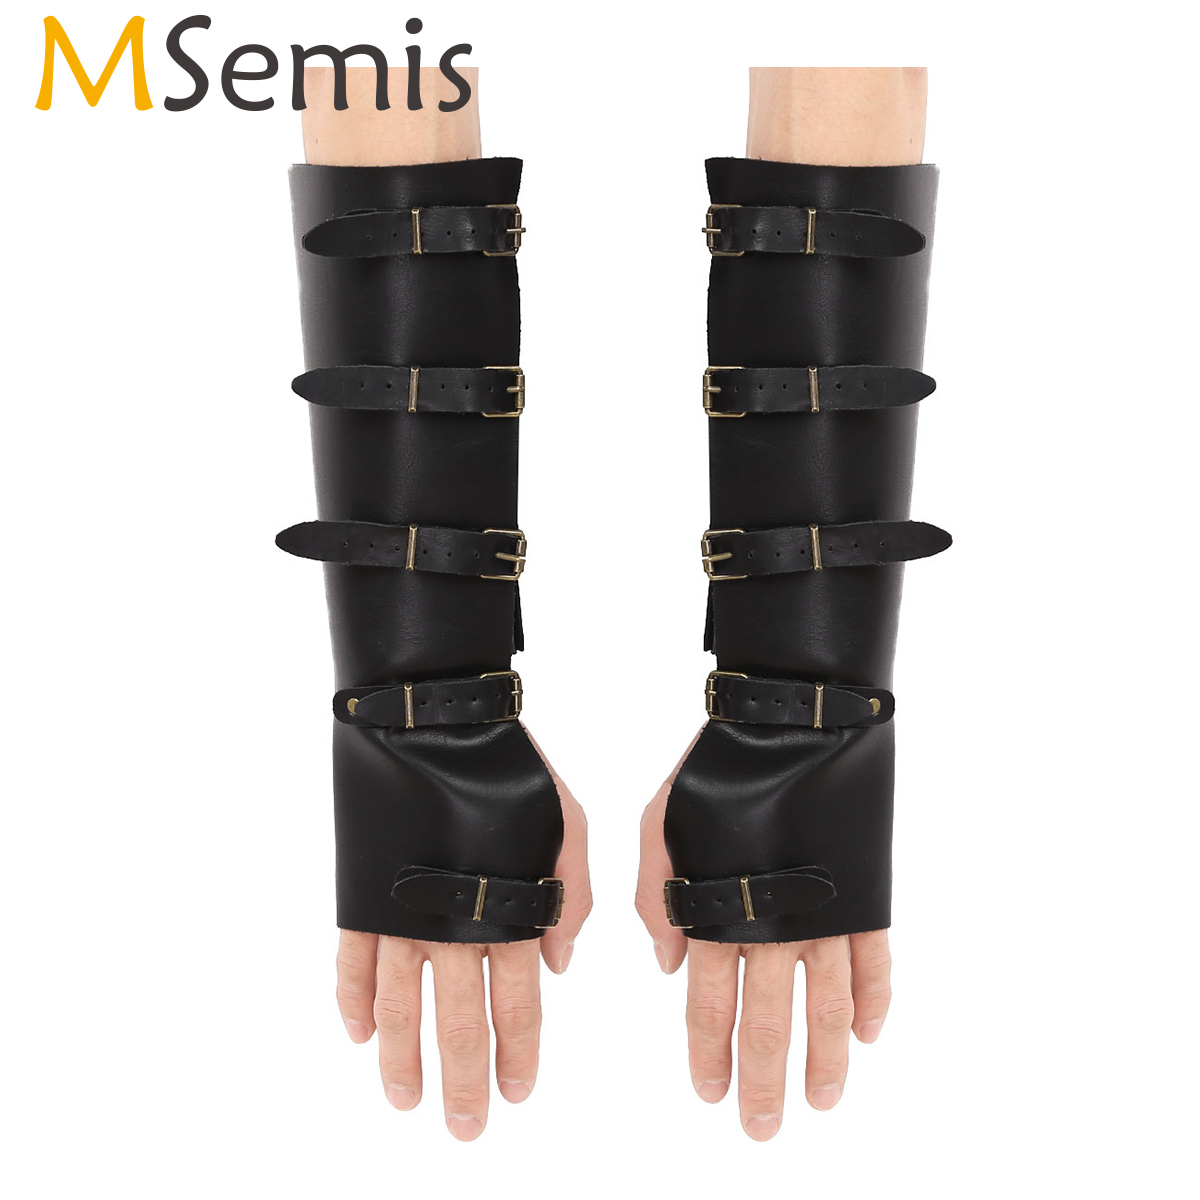 MSemis Steampunk Medieval Faux Leather Adjusta Metal Buckles Gauntlet Wristband Wide Bracers Protective Arm Warmers Armor Cuffs